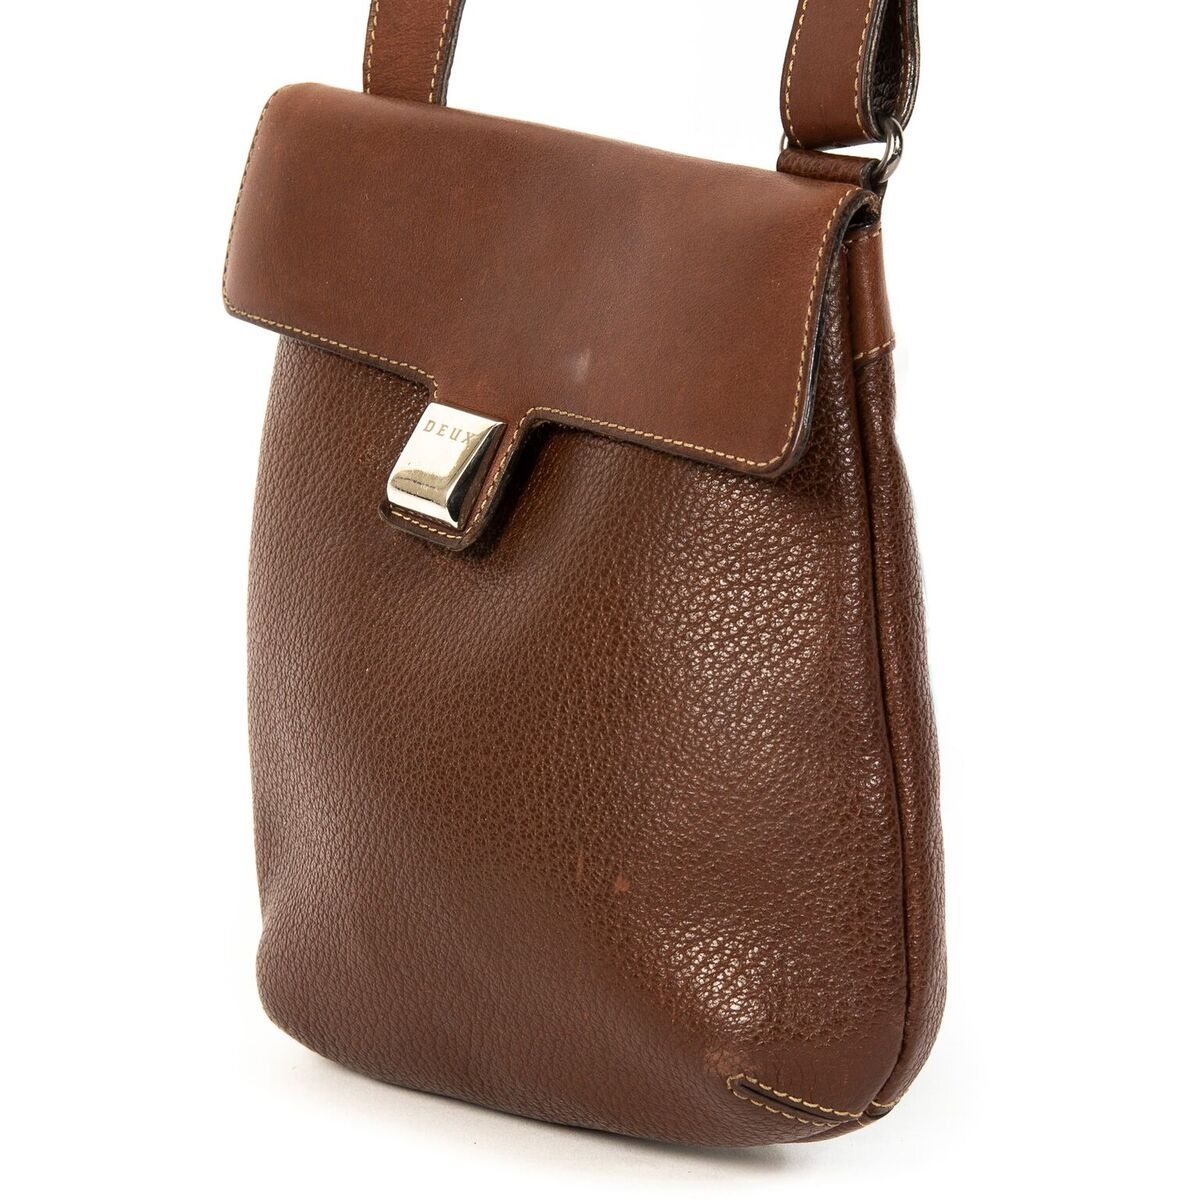 Buy authentic secondhand timeless Delvaux handbags at LabelLOV webshop, safe payment.